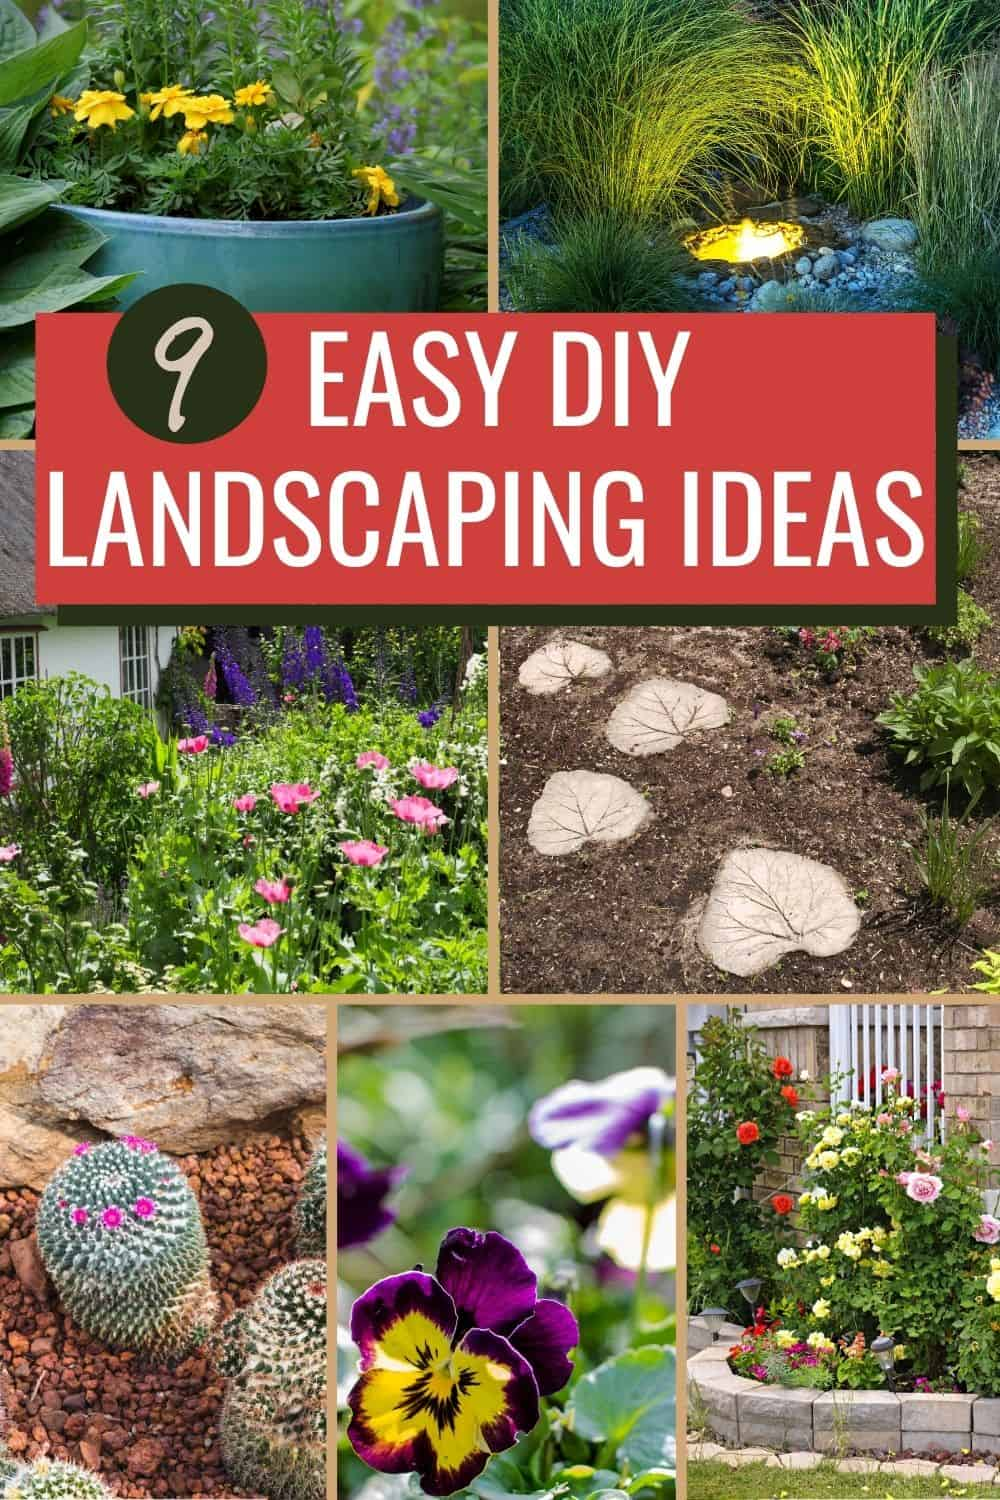 9 easy DIY landscaping ideas